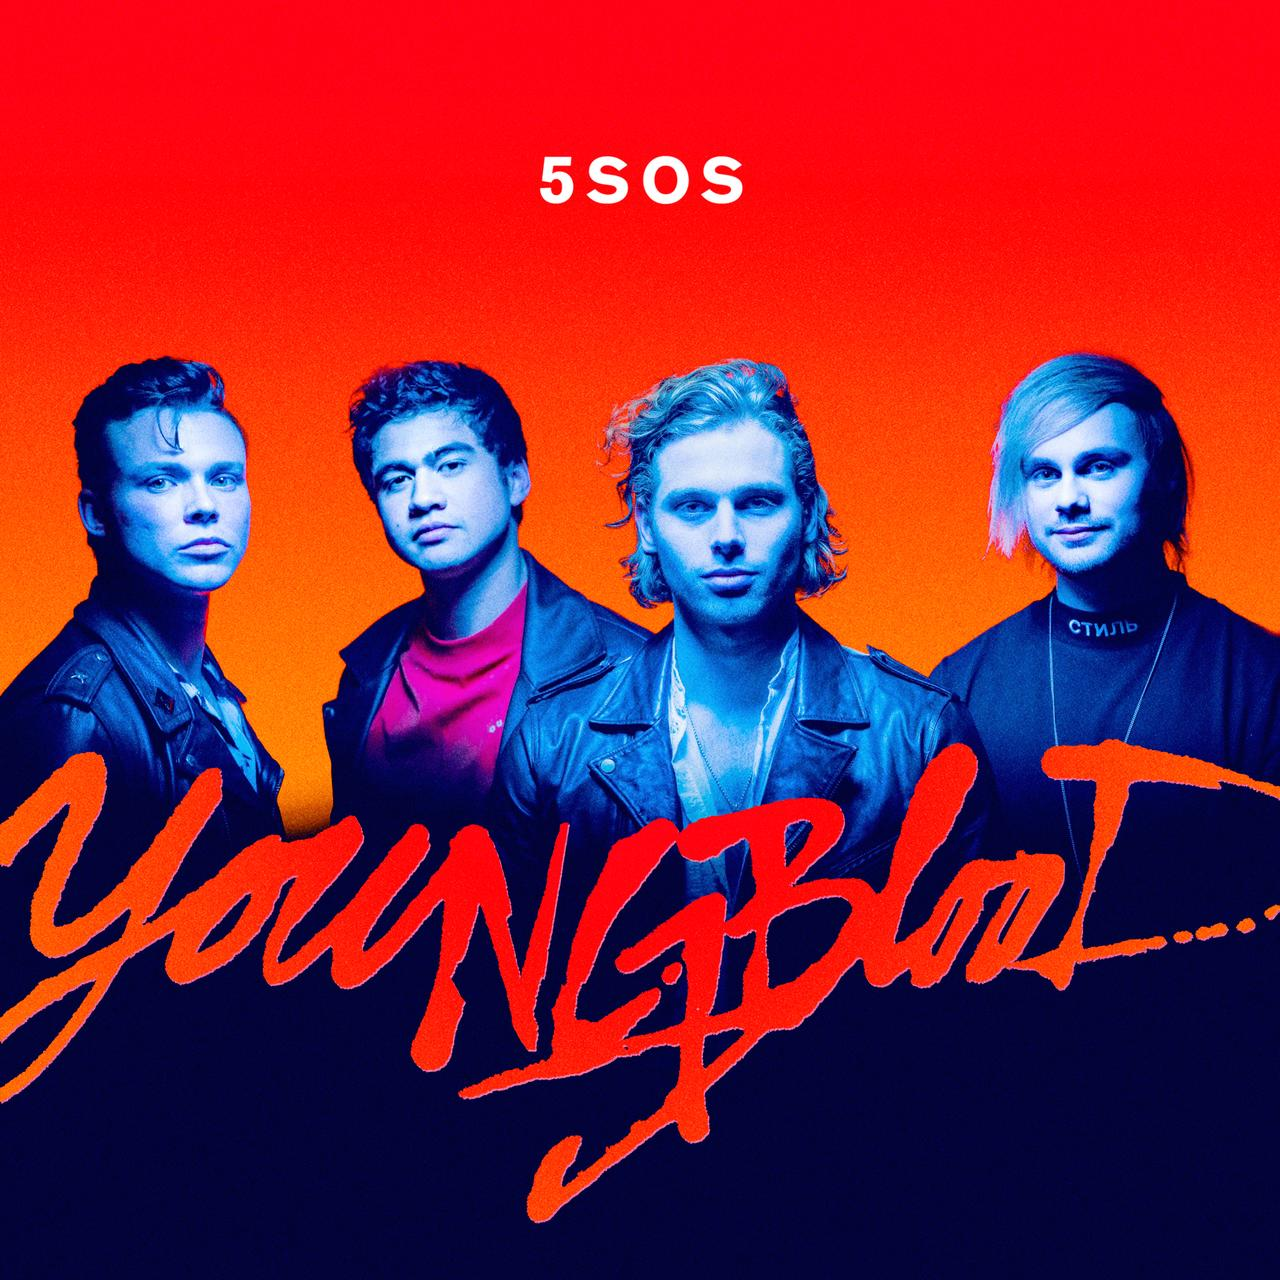 5sos Poster Youngblood